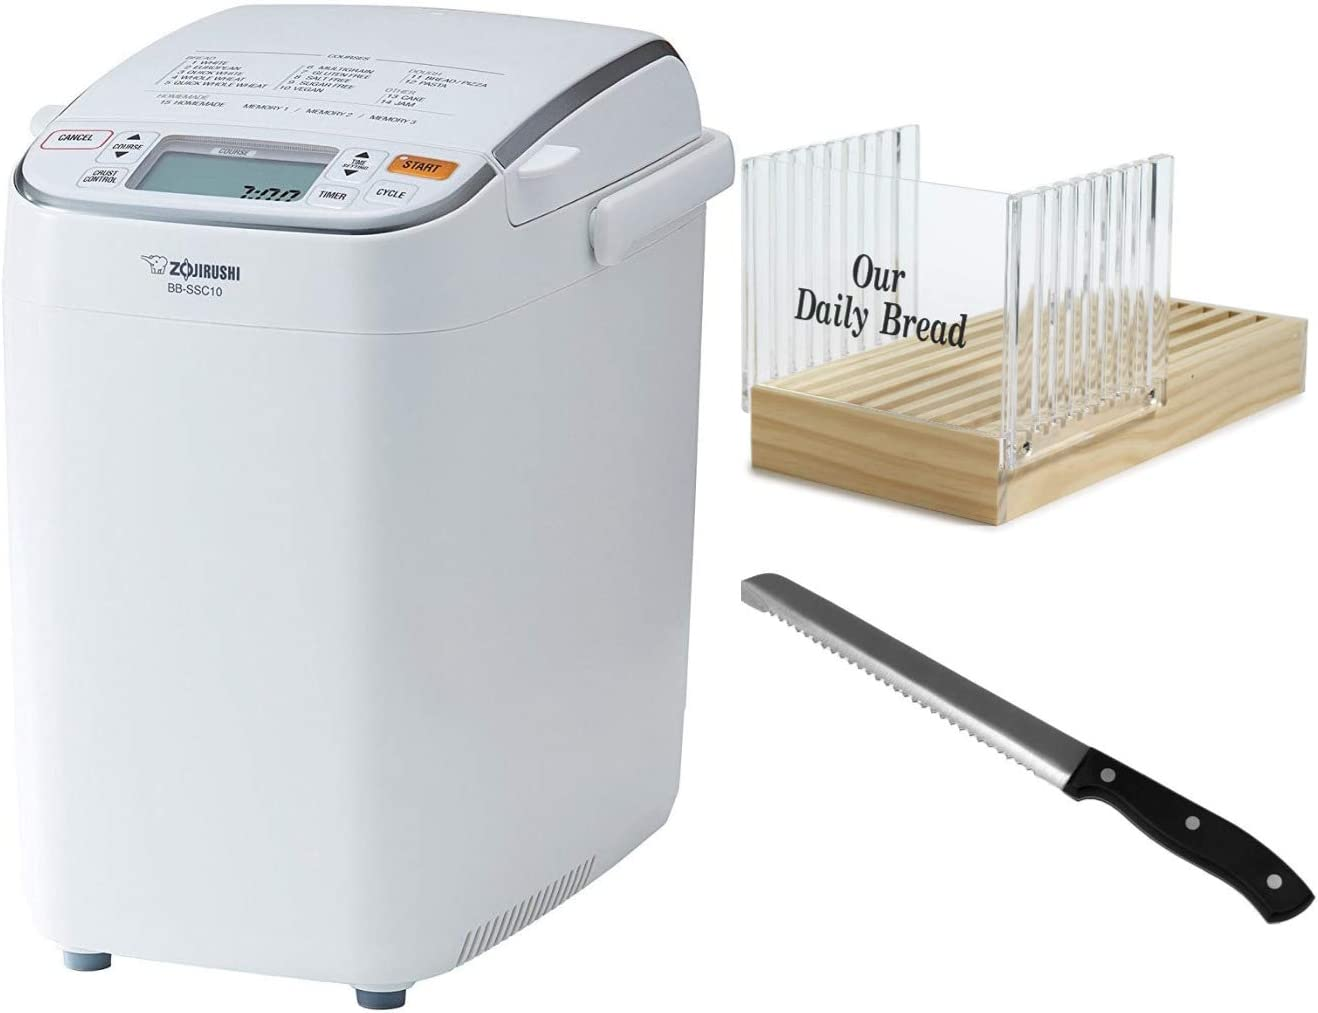 Zojirushi BB-SSC10 Home Bakery Maestro Breadmaker with Bread Slicer and 8-Inch Stainless Steel Bread Knife Bundle (3 Items)